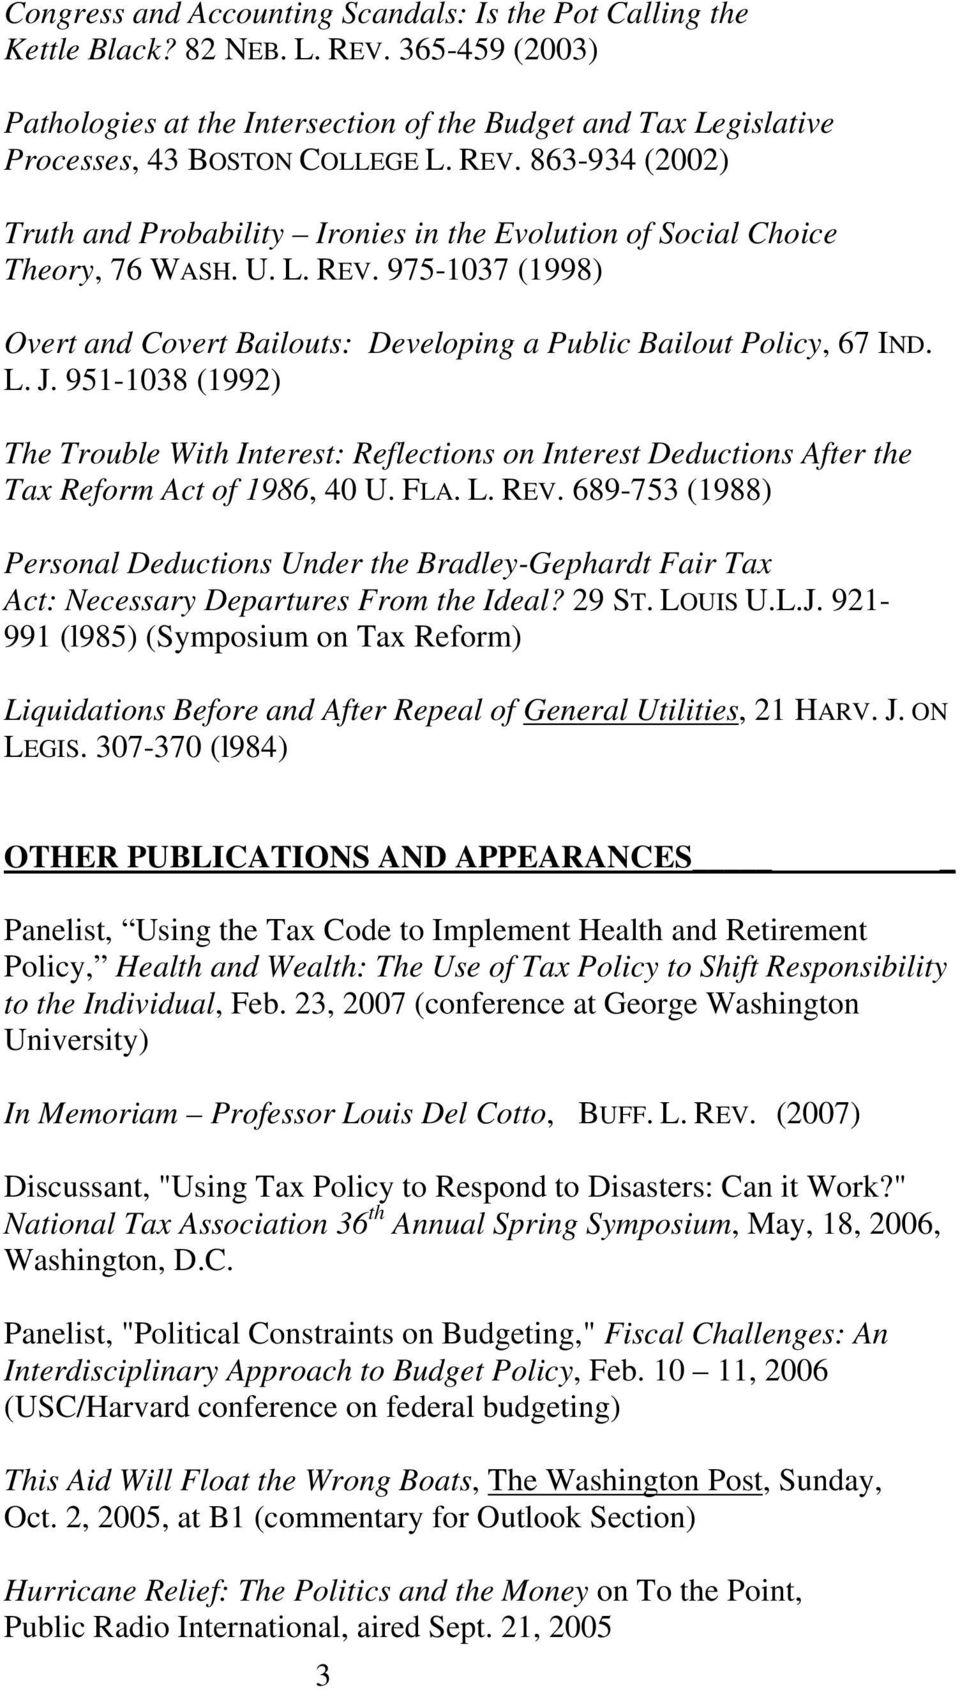 L. J. 951-1038 (1992) The Trouble With Interest: Reflections on Interest Deductions After the Tax Reform Act of 1986, 40 U. FLA. L. REV.